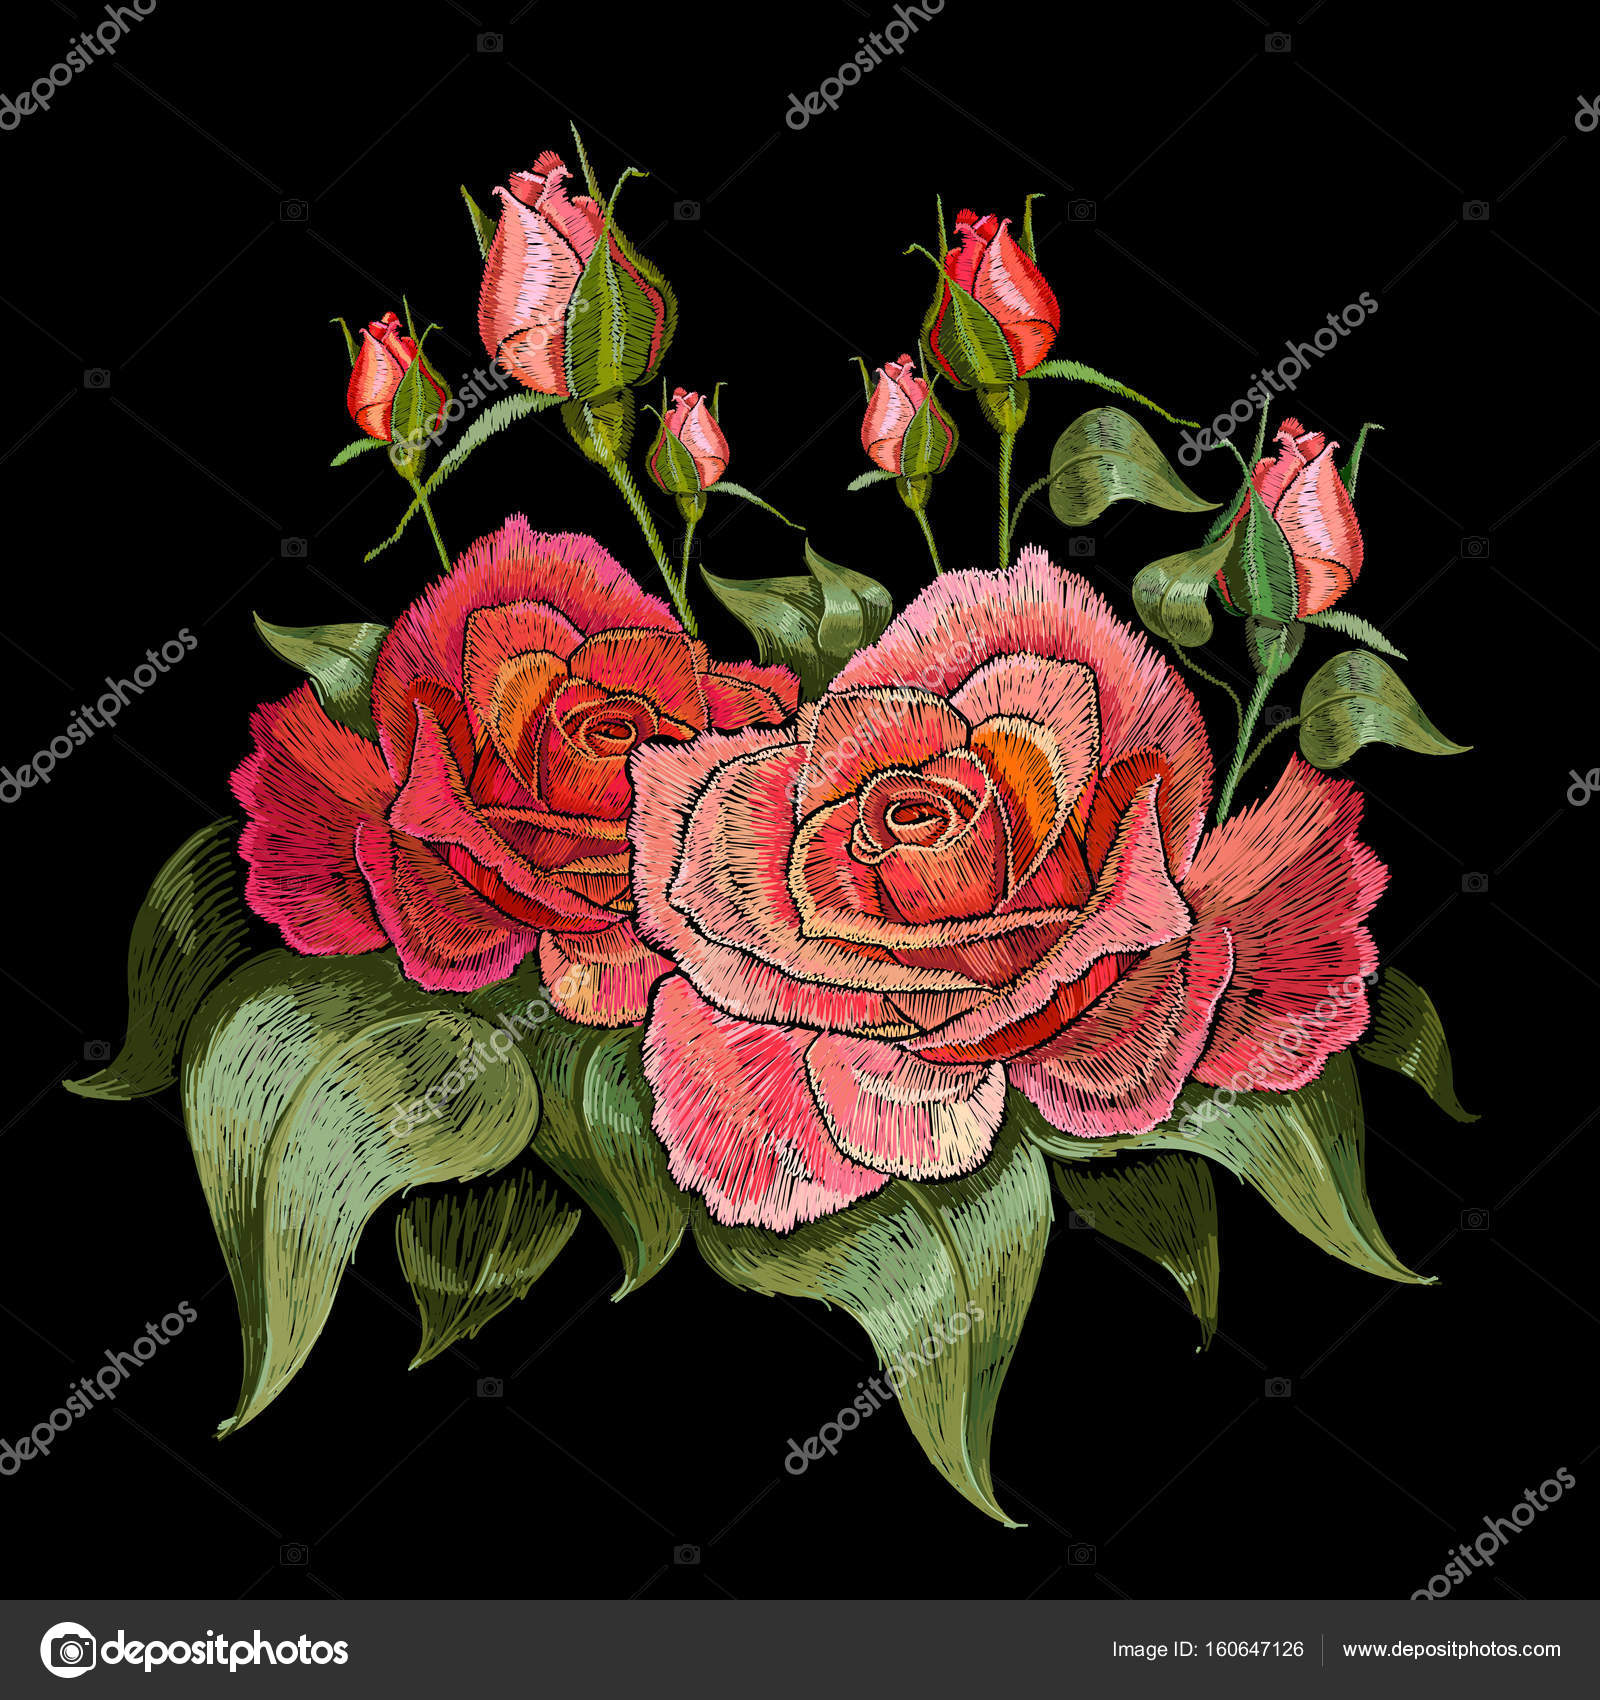 Red roses embroidery. Beautiful buds of red roses — Stock Vector on garden dress forms, country garden designs, garden edging designs, garden home designs, garden wedding designs, garden fabric, garden box designs, garden art designs, garden cake designs, garden motif design, garden surface pattern designs, garden window designs, garden flowers designs, garden needlepoint designs,